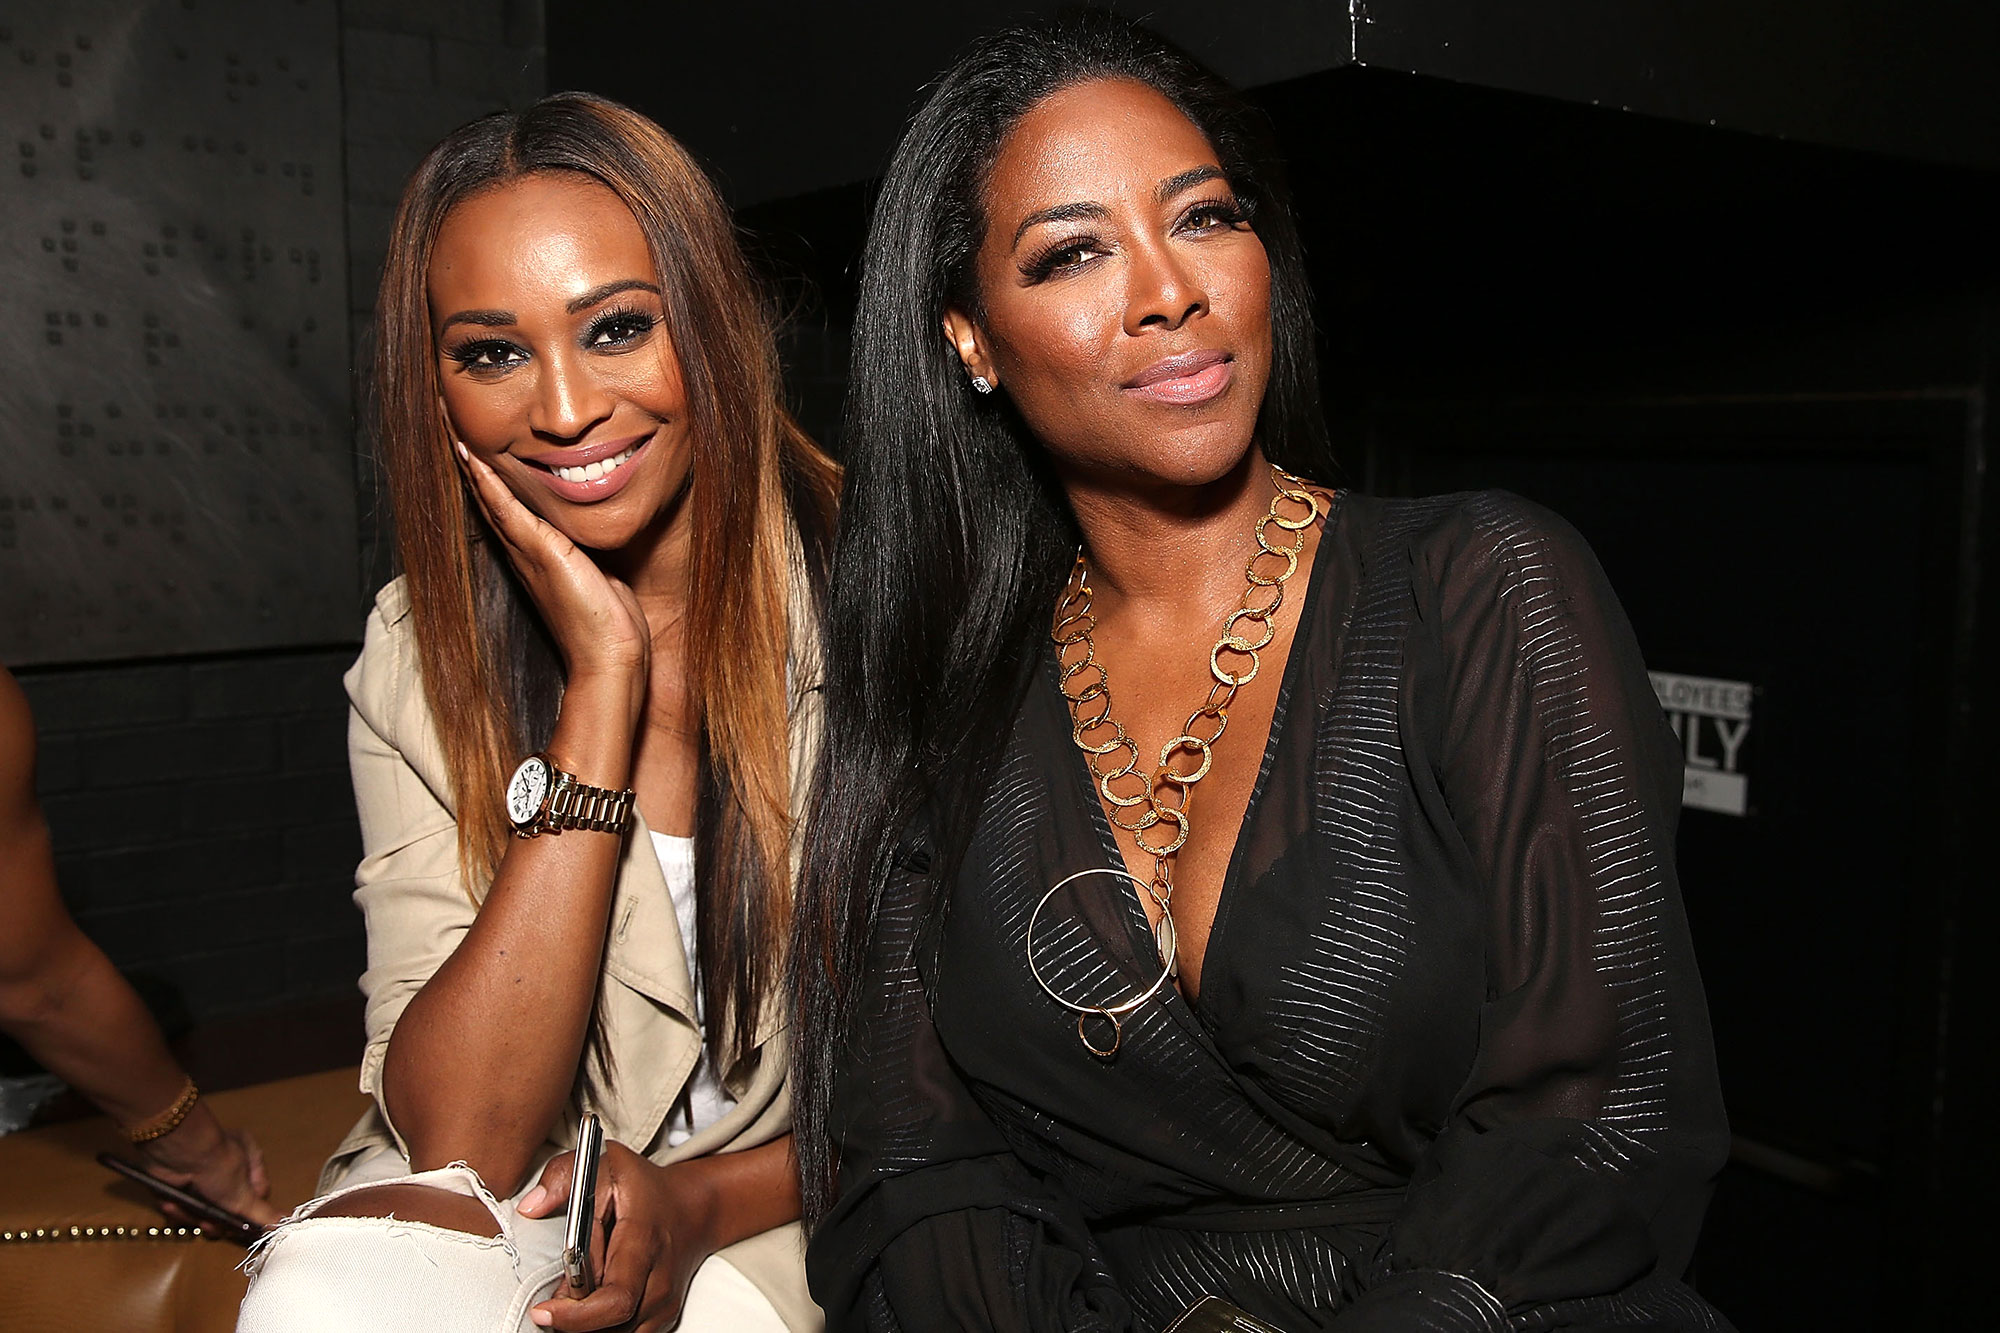 Cynthia Bailey And Kenya Moore Celebrate The Super Bowl Weekend - There's A Meet And Greet Session With Kenya Today!